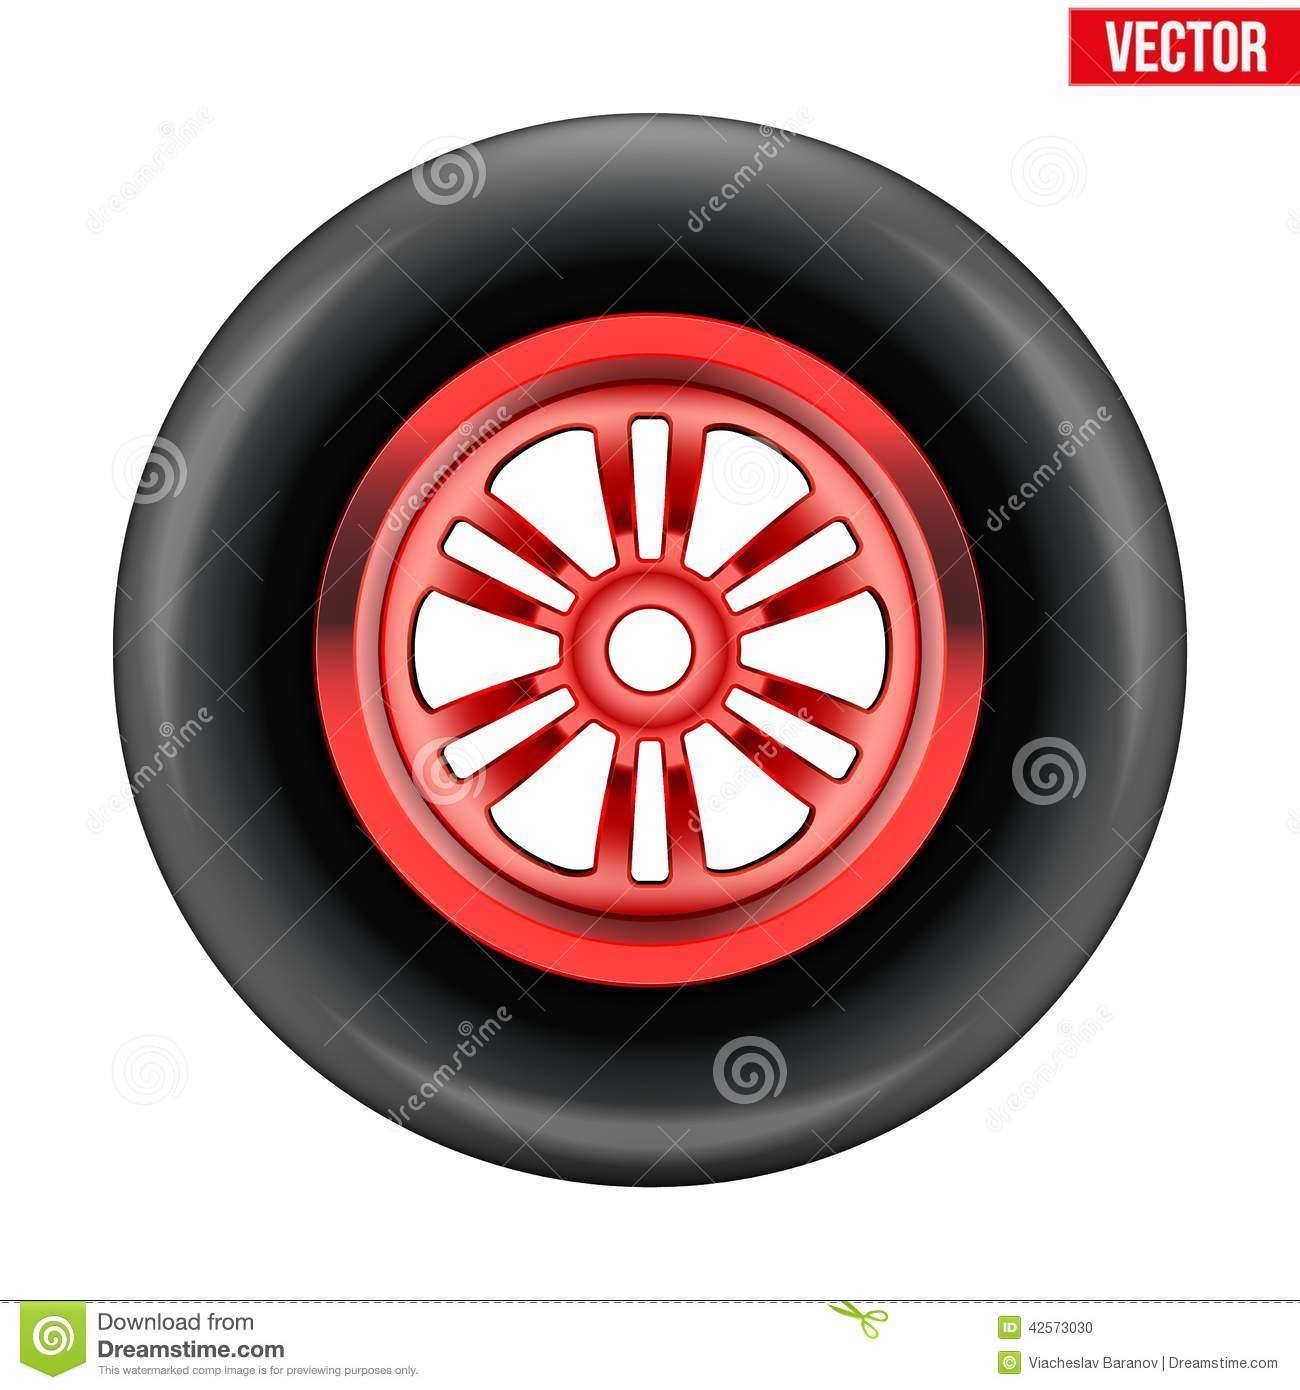 Vector Race Wheel And Tire Symbol Stock Vector - Illustration ... for Racing Tire Vector  177nar